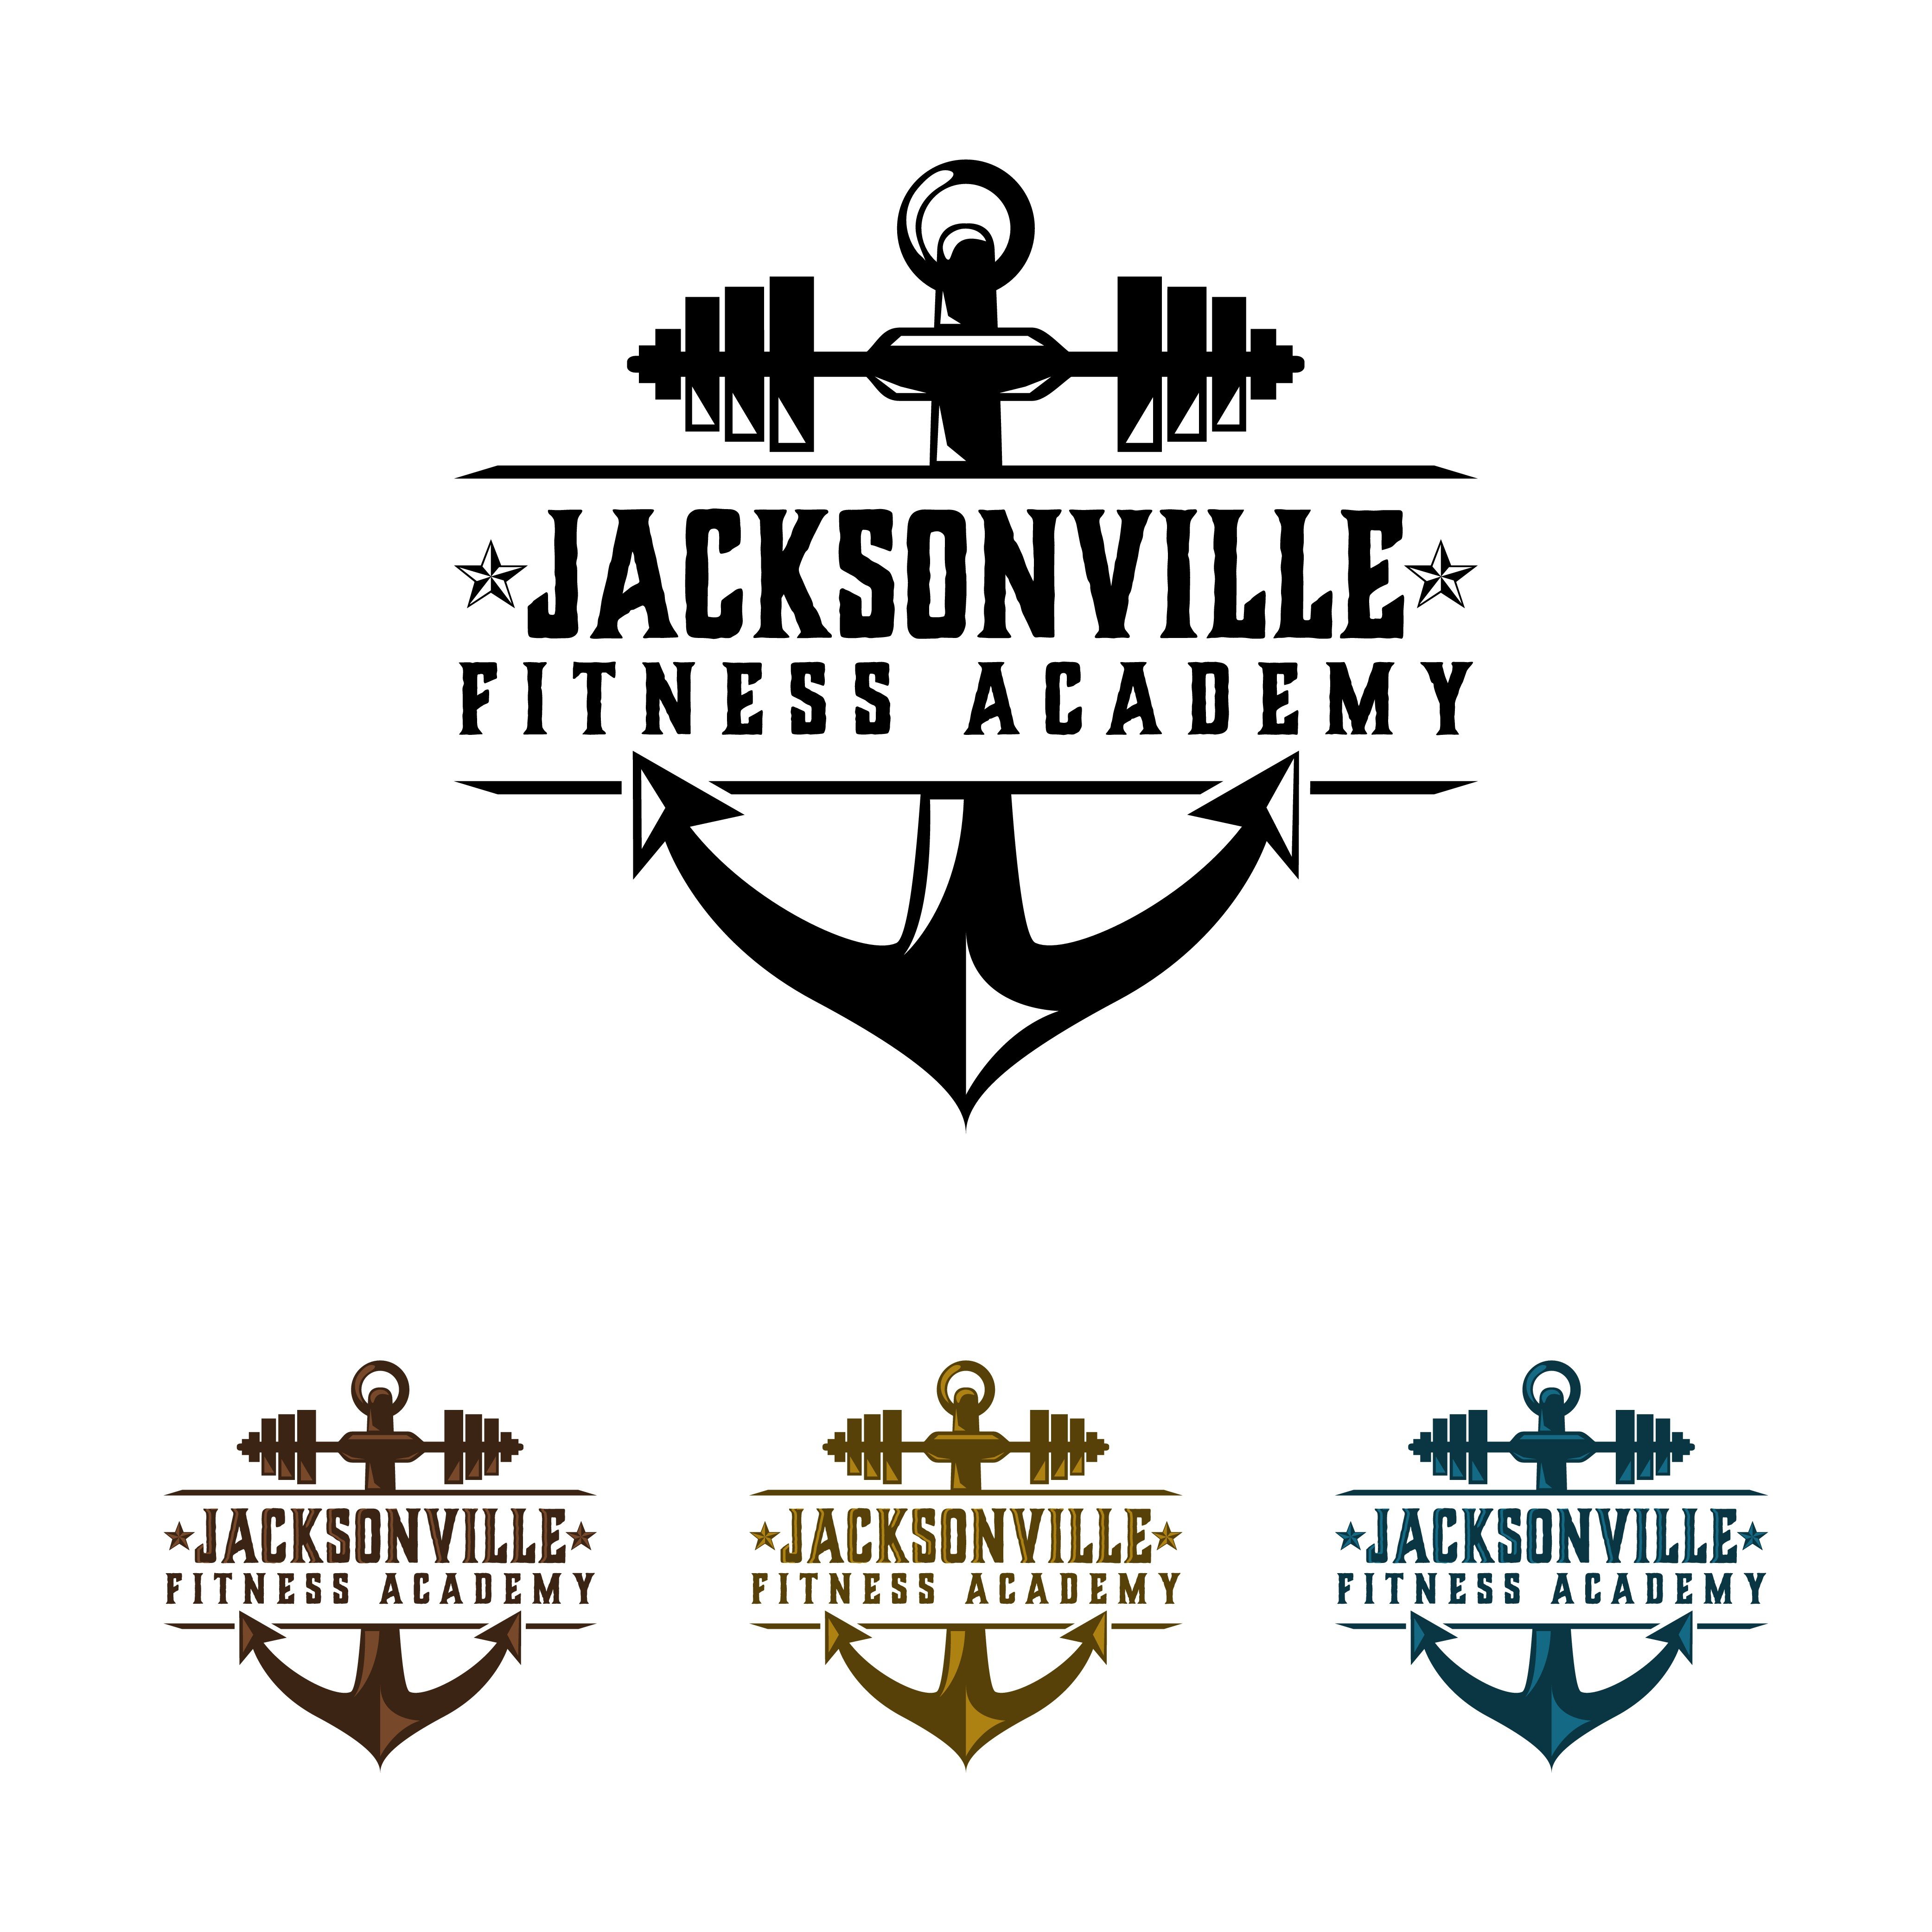 Capture a city's nautical history for Jacksonville Fitness Academy